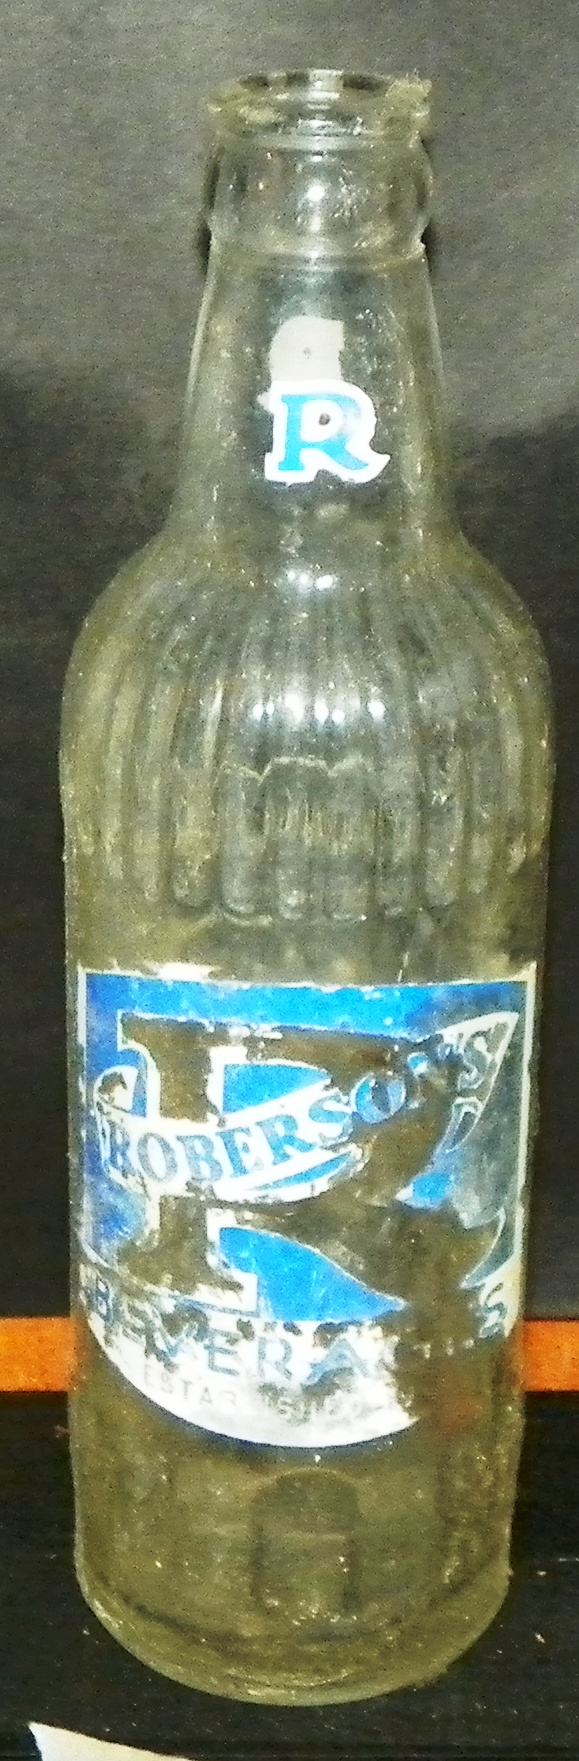 Robersons Soda Bottle